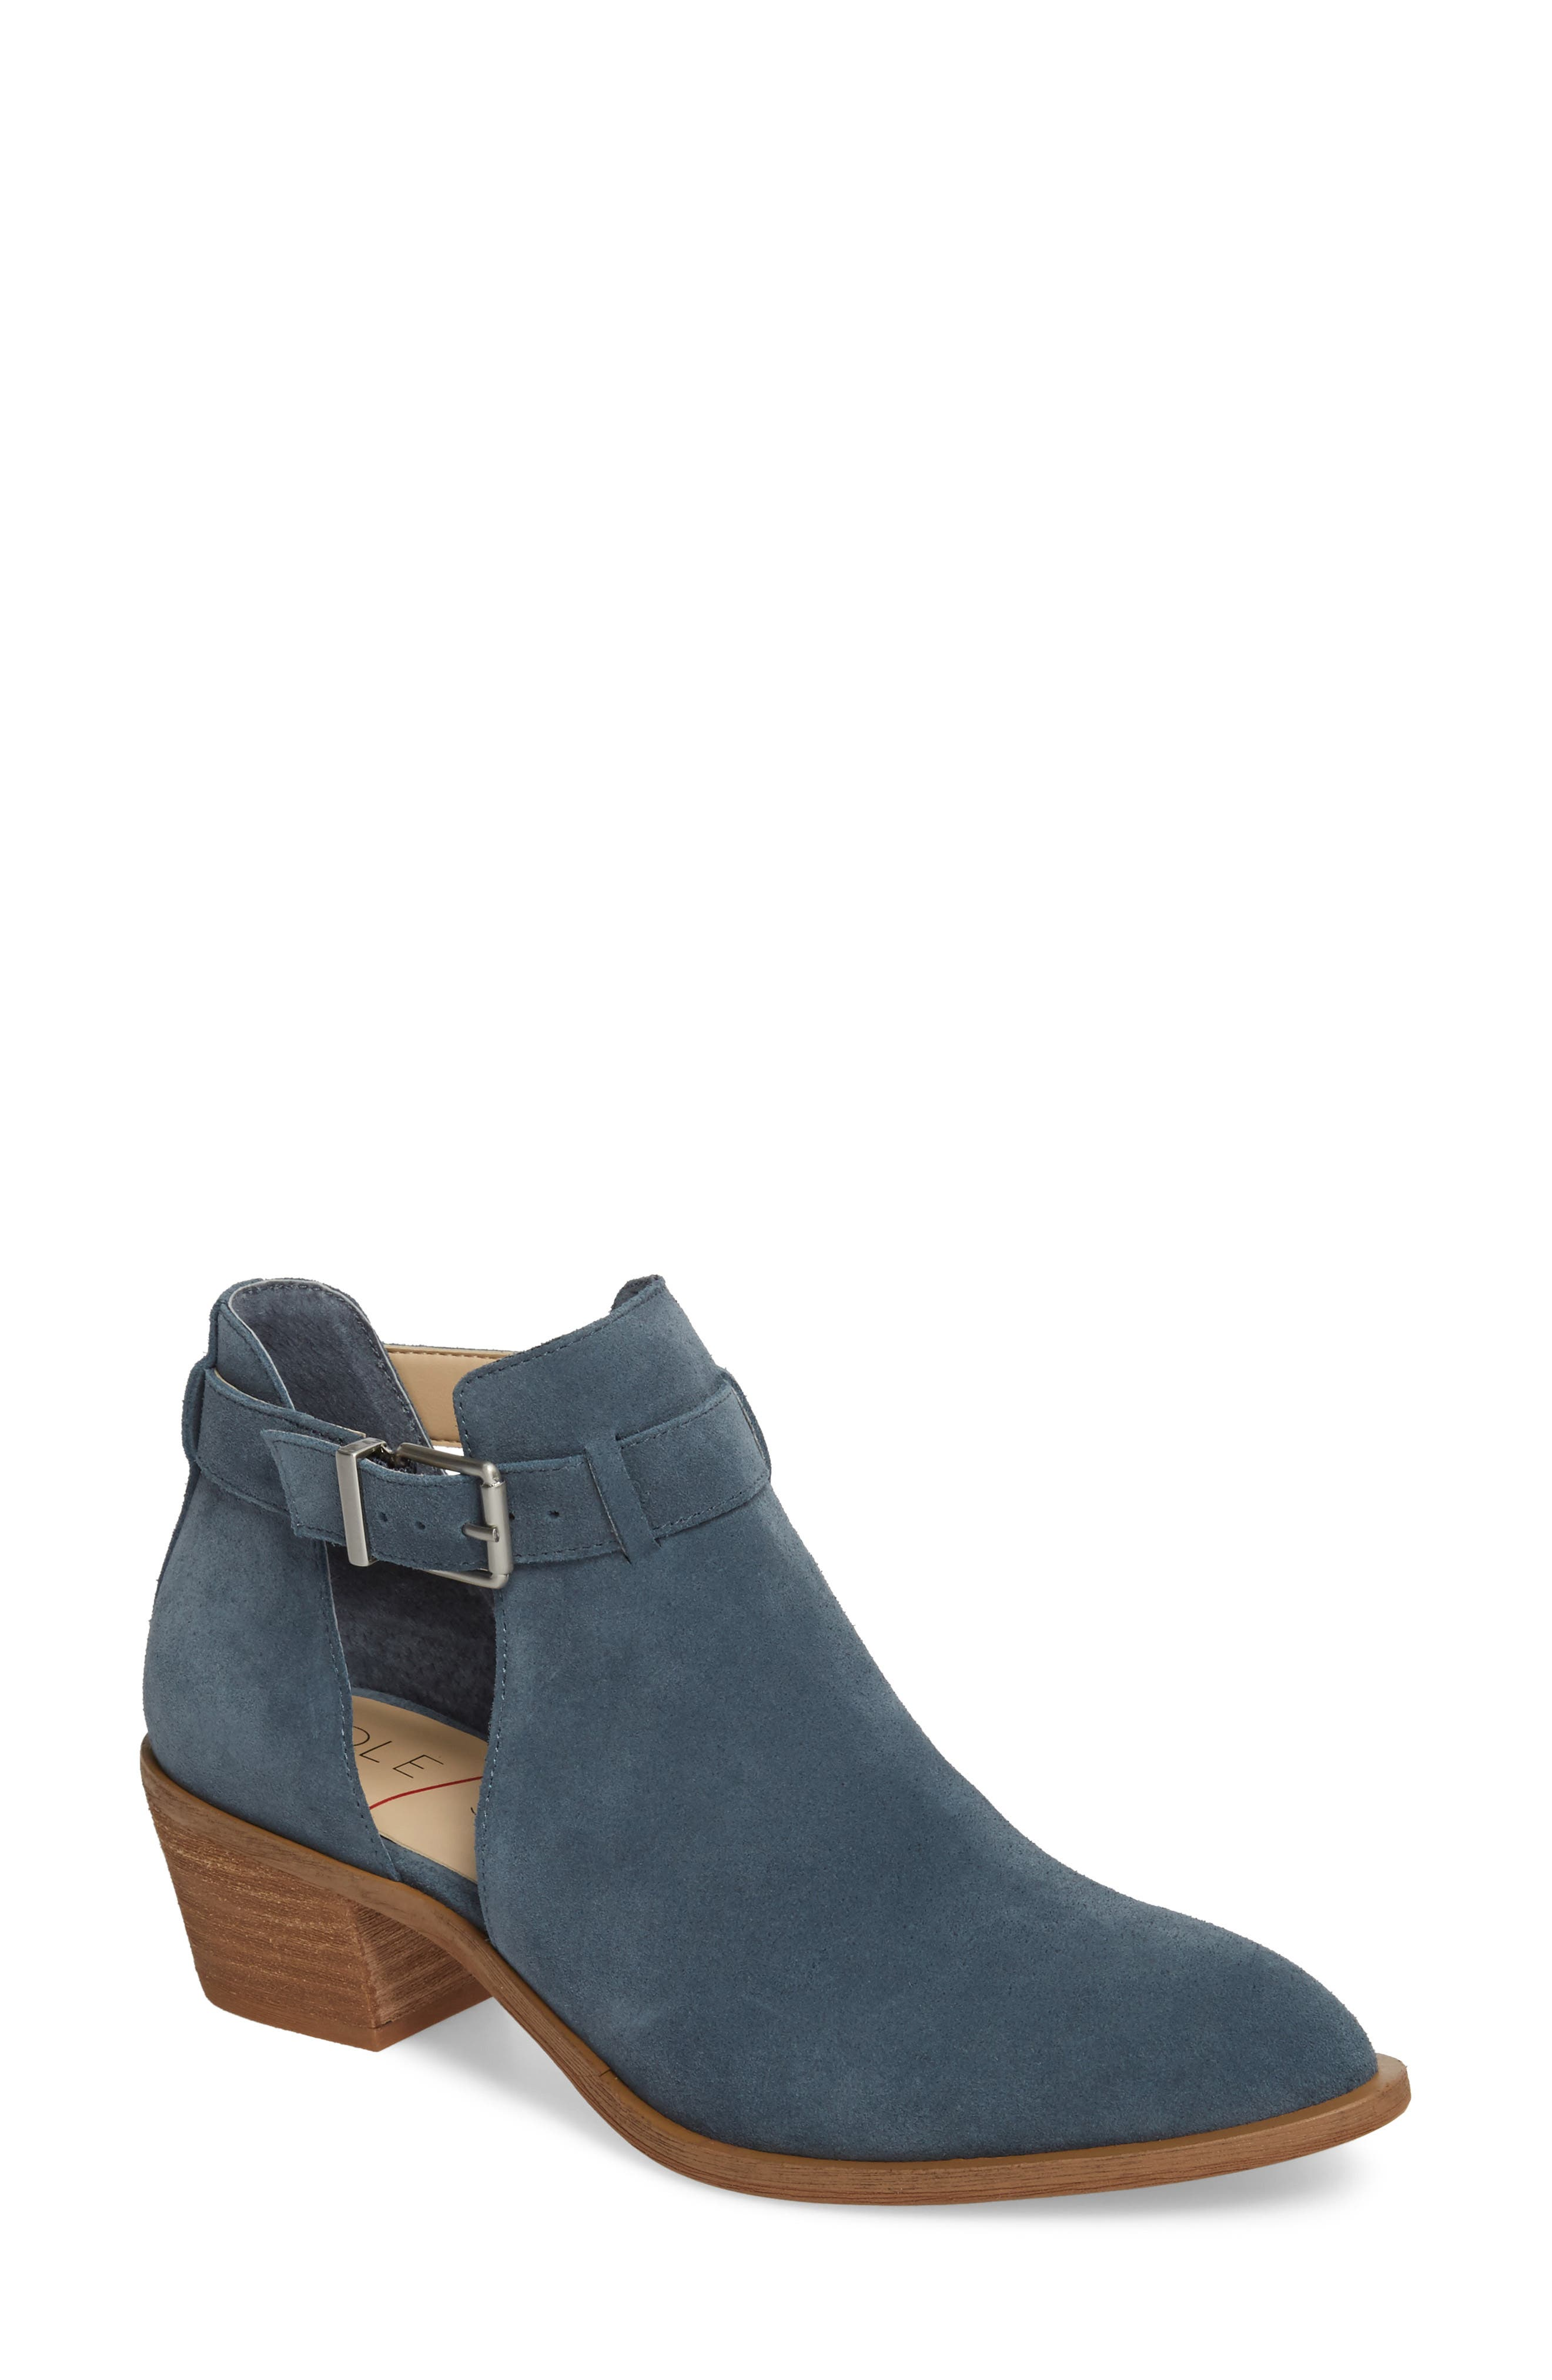 Alternate Image 1 Selected - Sole Society Nahia Cutout Bootie (Women)